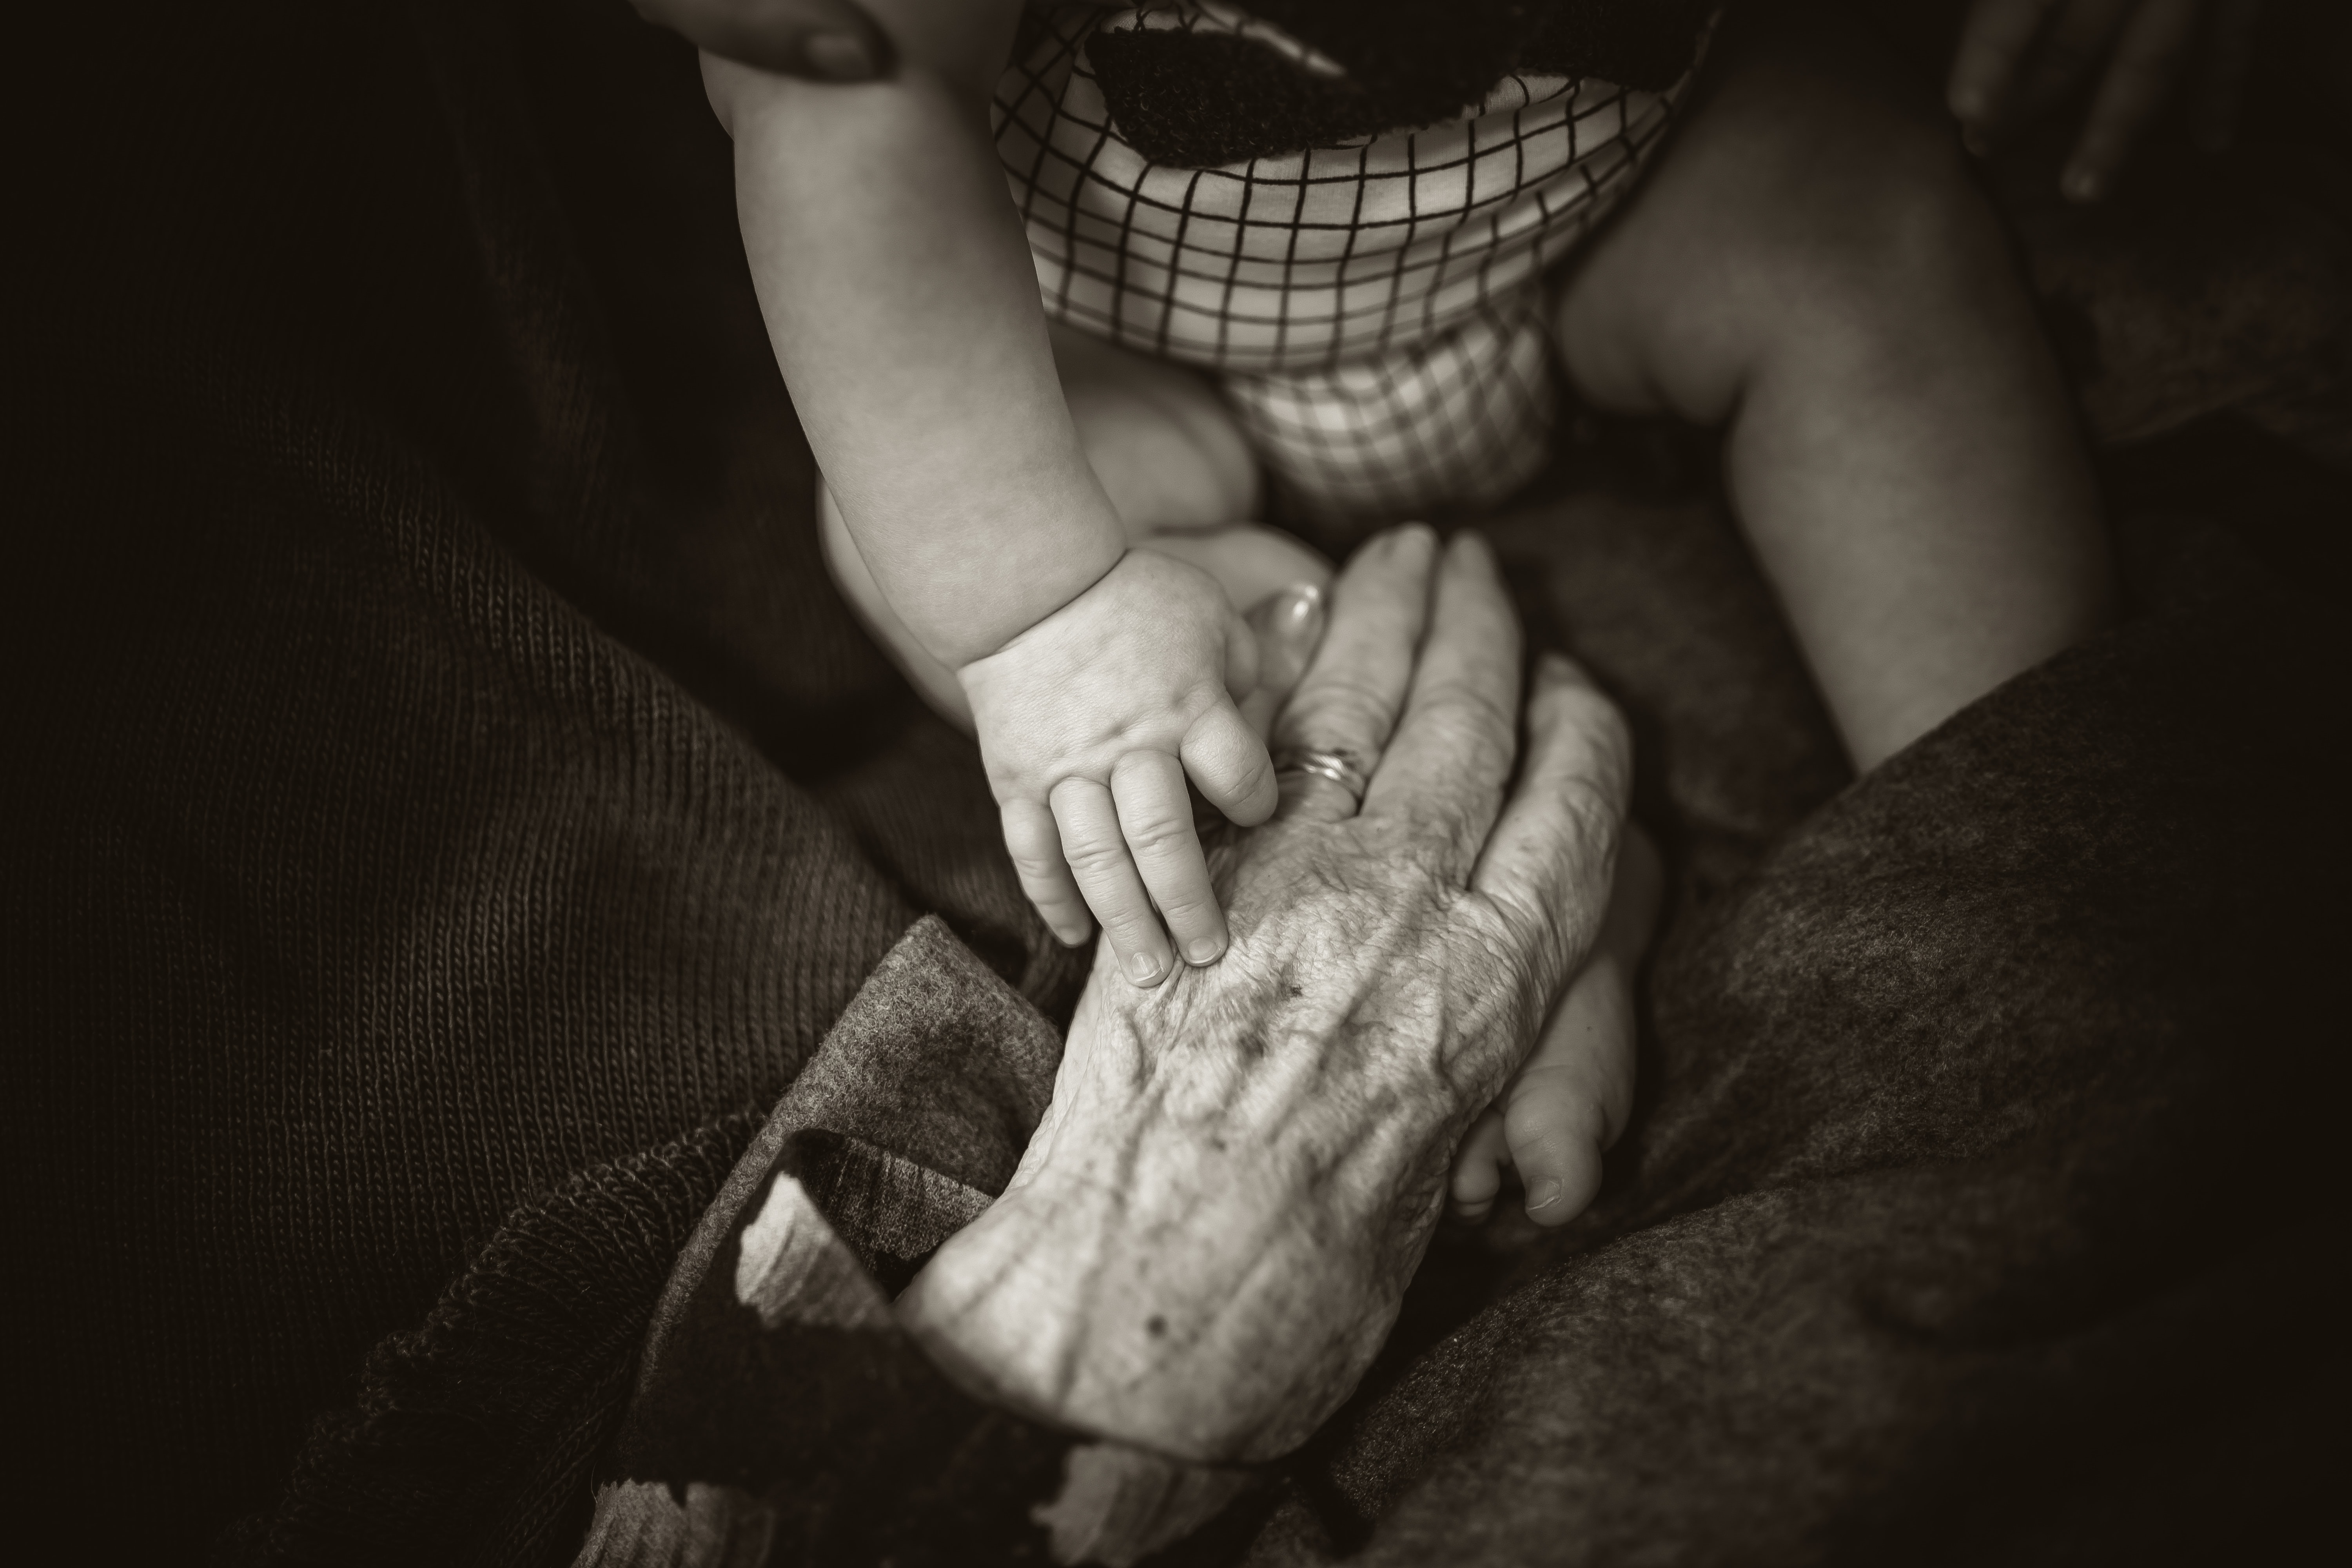 Image of old person and baby